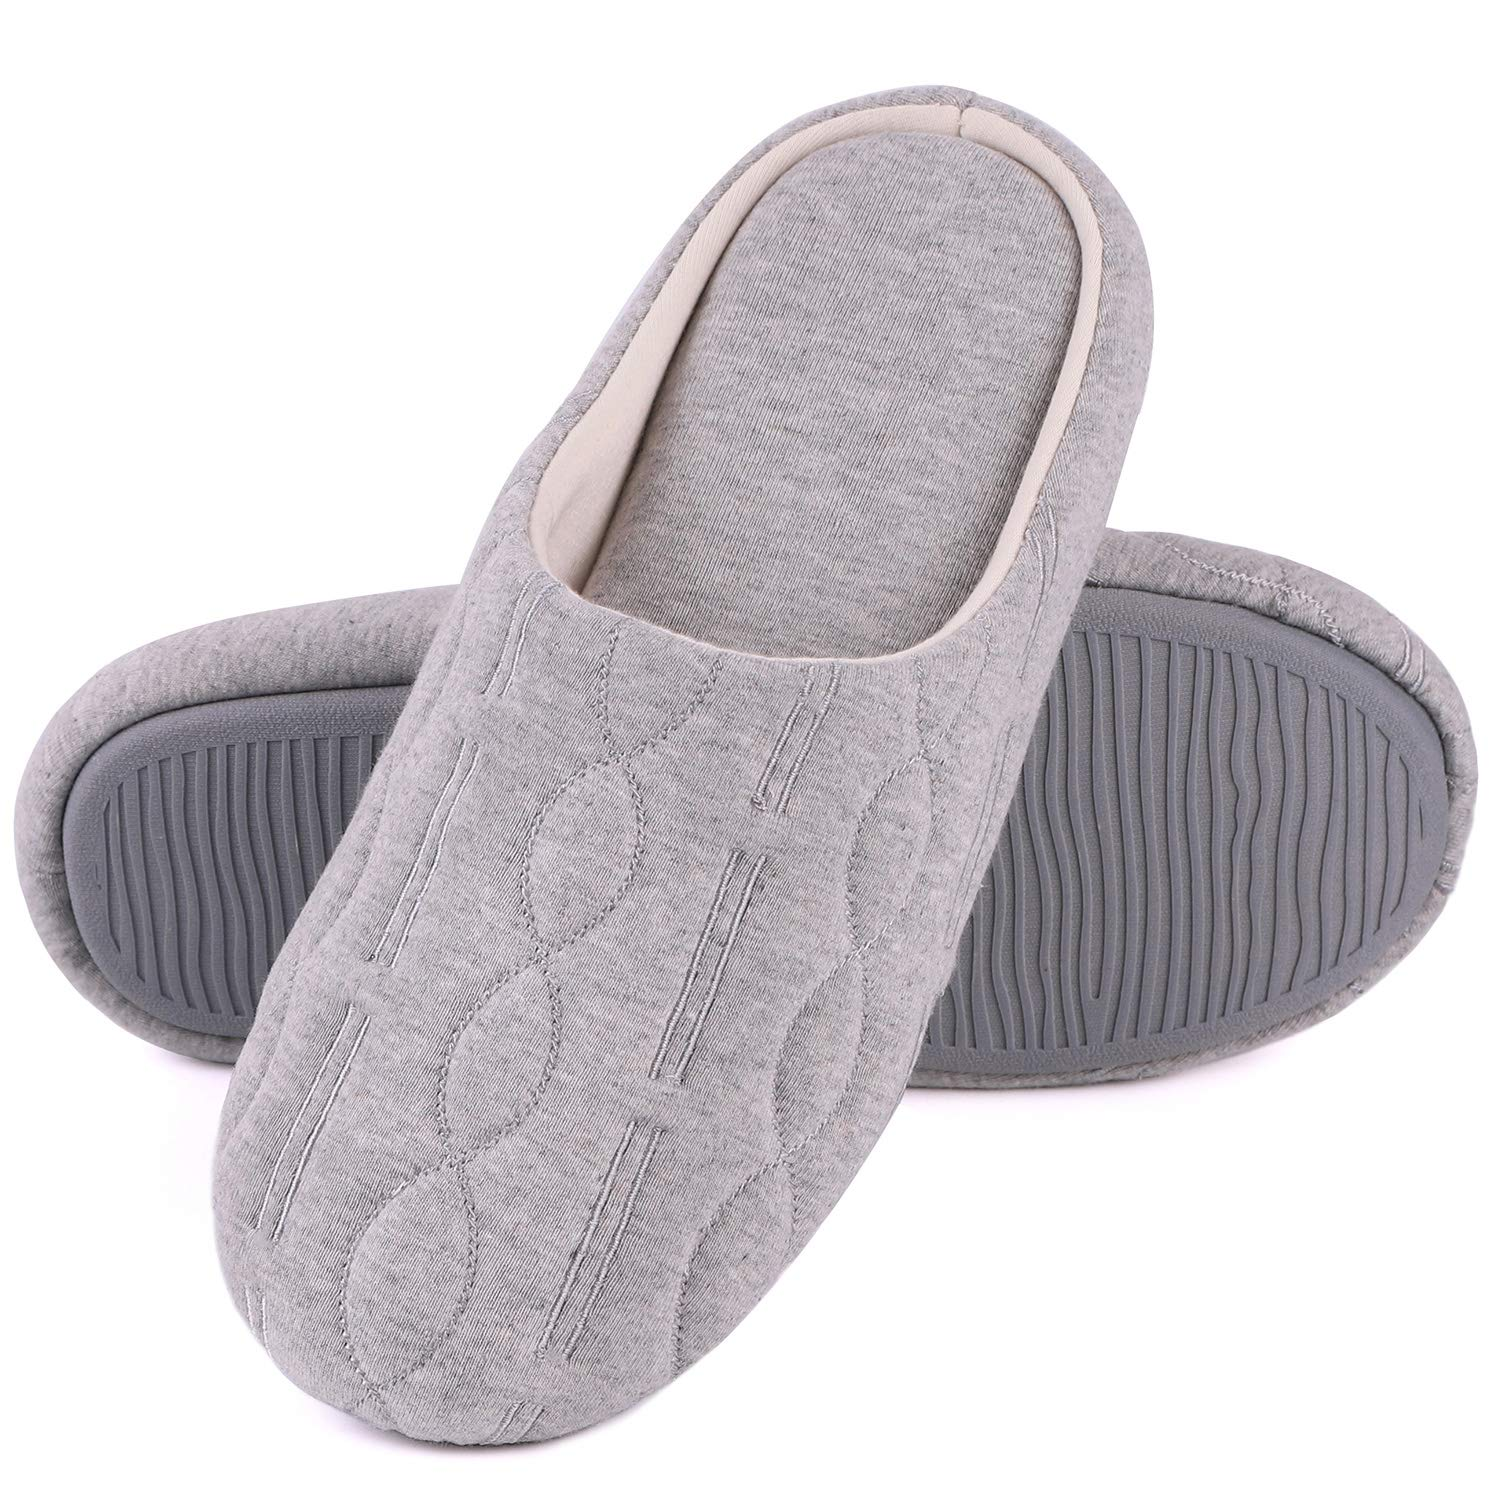 Women's Comfort Quilted Cotton Memory Foam House Slippers Elegant Embroidery (Medium / 7-8 B(M) US, Gray)